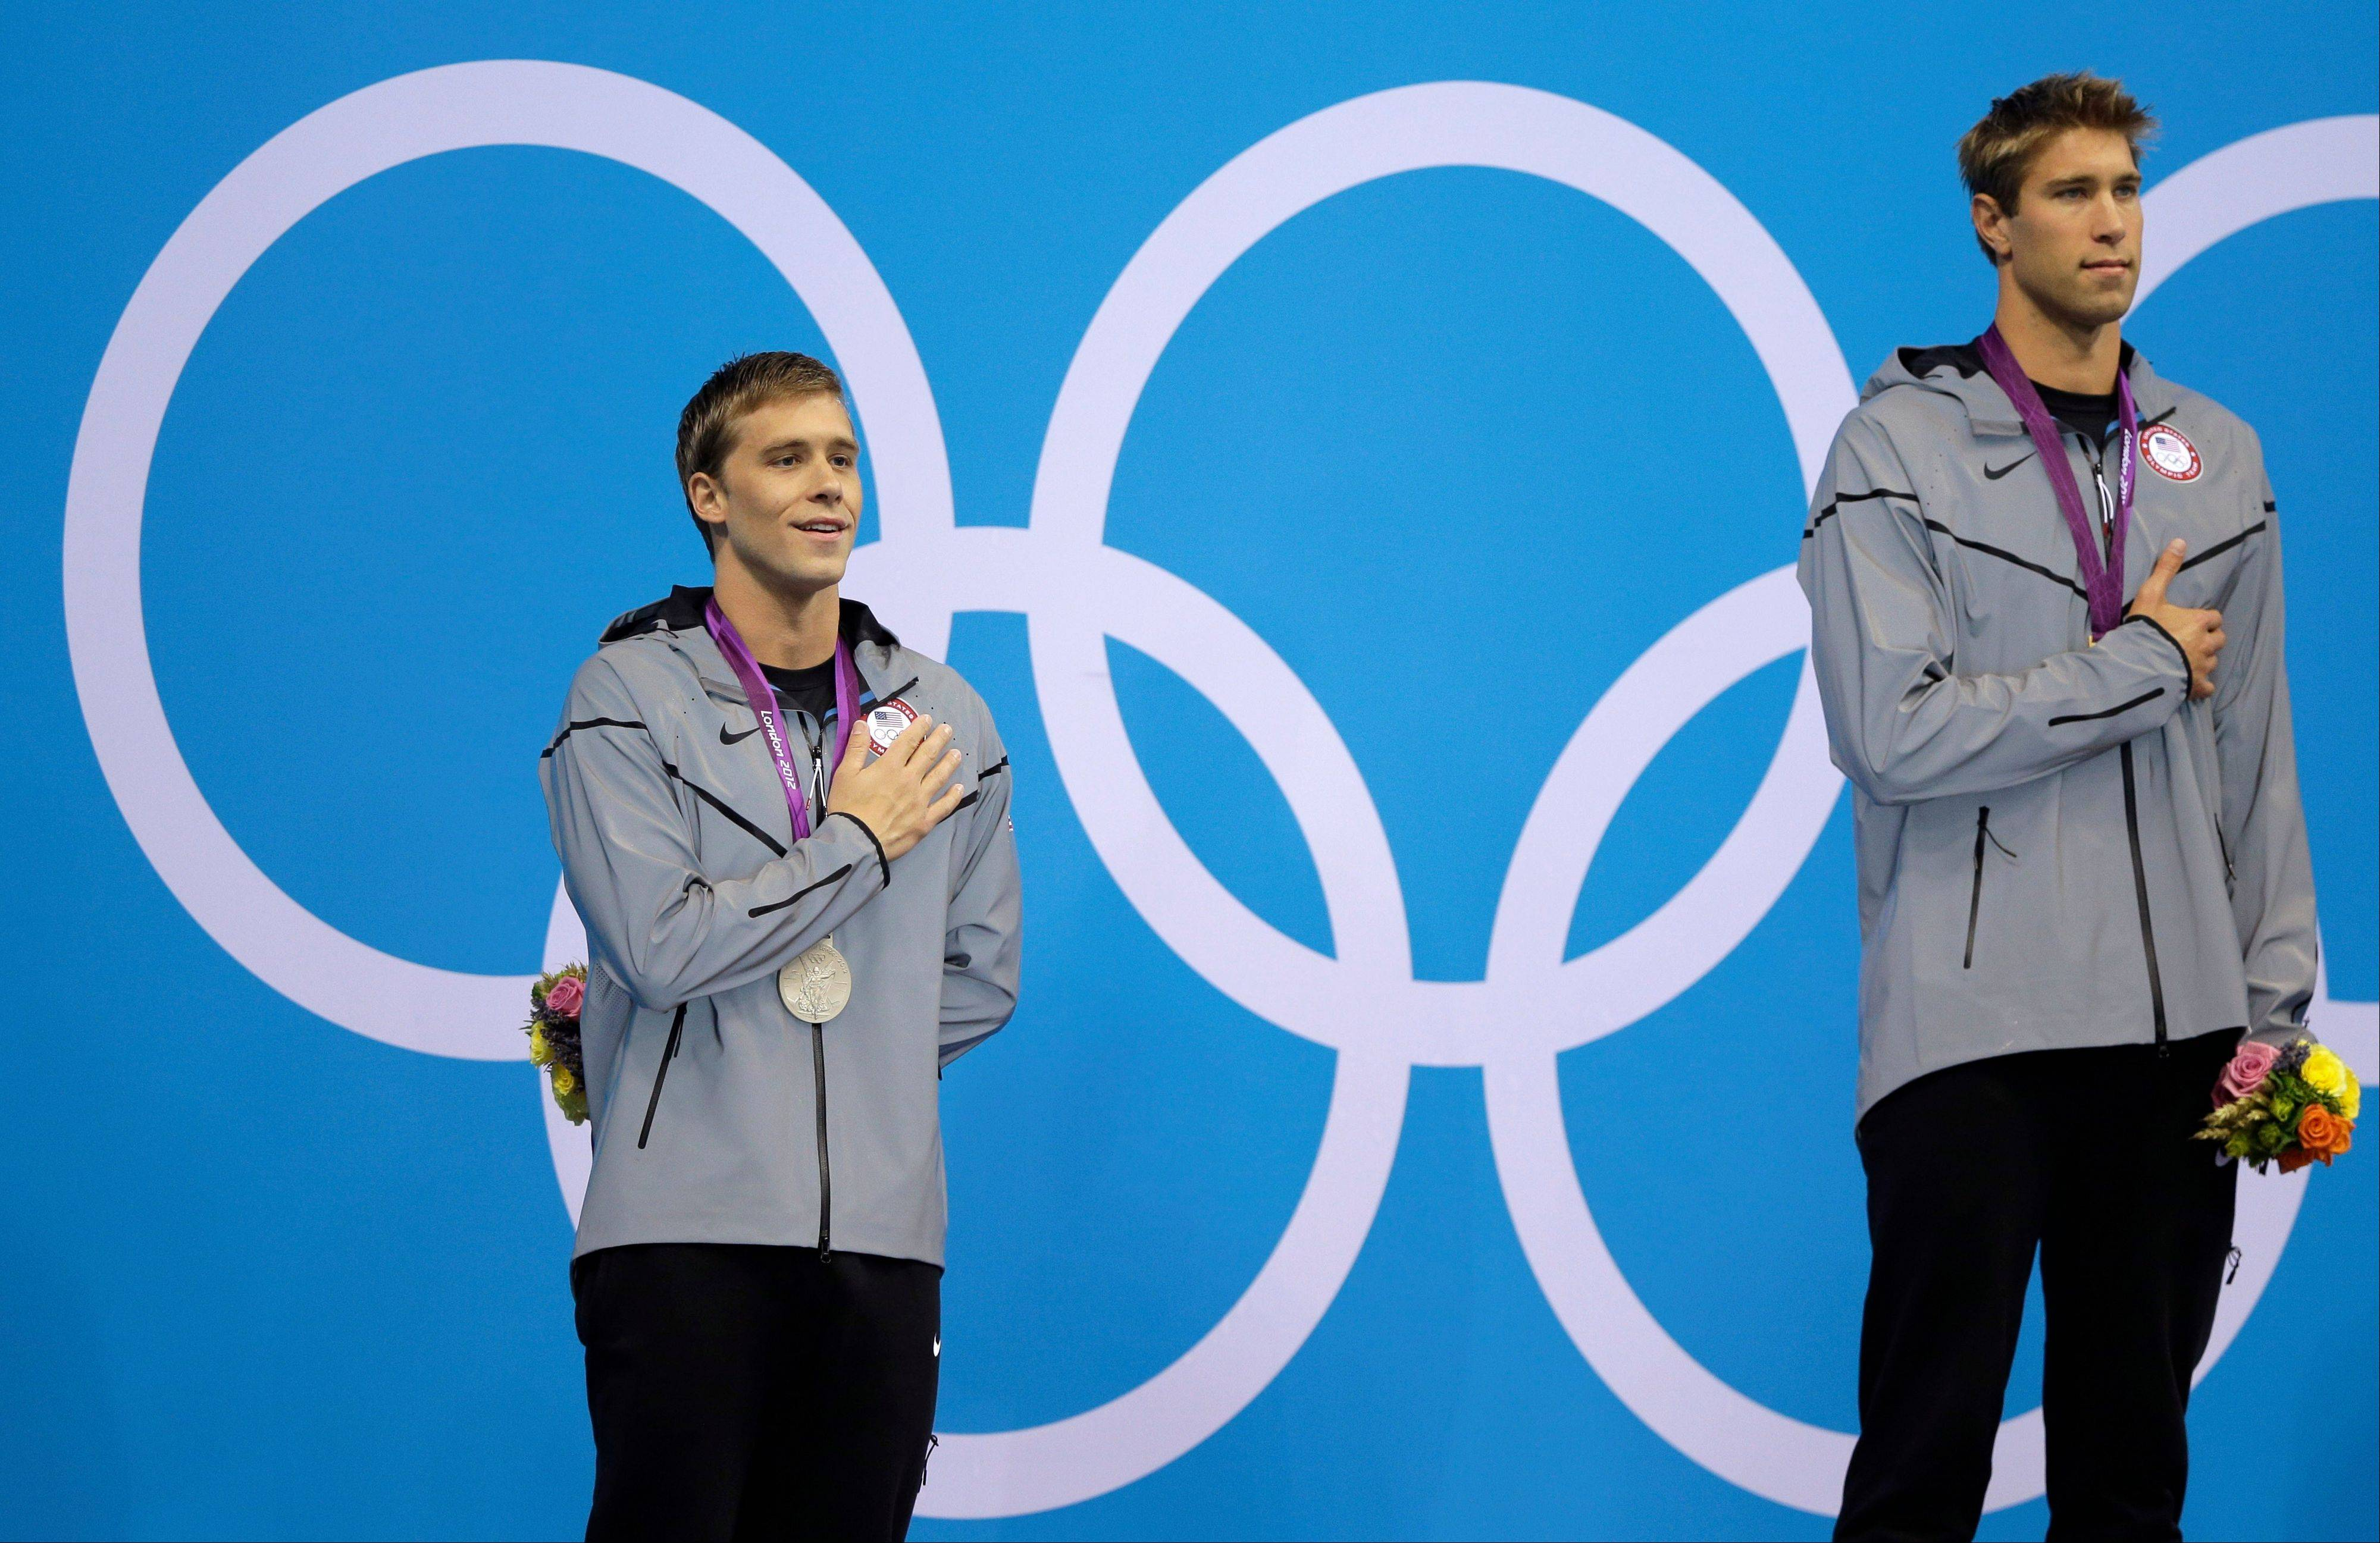 United States silver medalist Nick Thoman, left, and gold Matthew Grevers, right, listen to the U.S. national anthem during a ceremony following their wins in the men's 100-meter backstroke swimming final at the Aquatics Centre in the Olympic Park during the 2012 Summer Olympics in London, Monday, July 30, 2012.